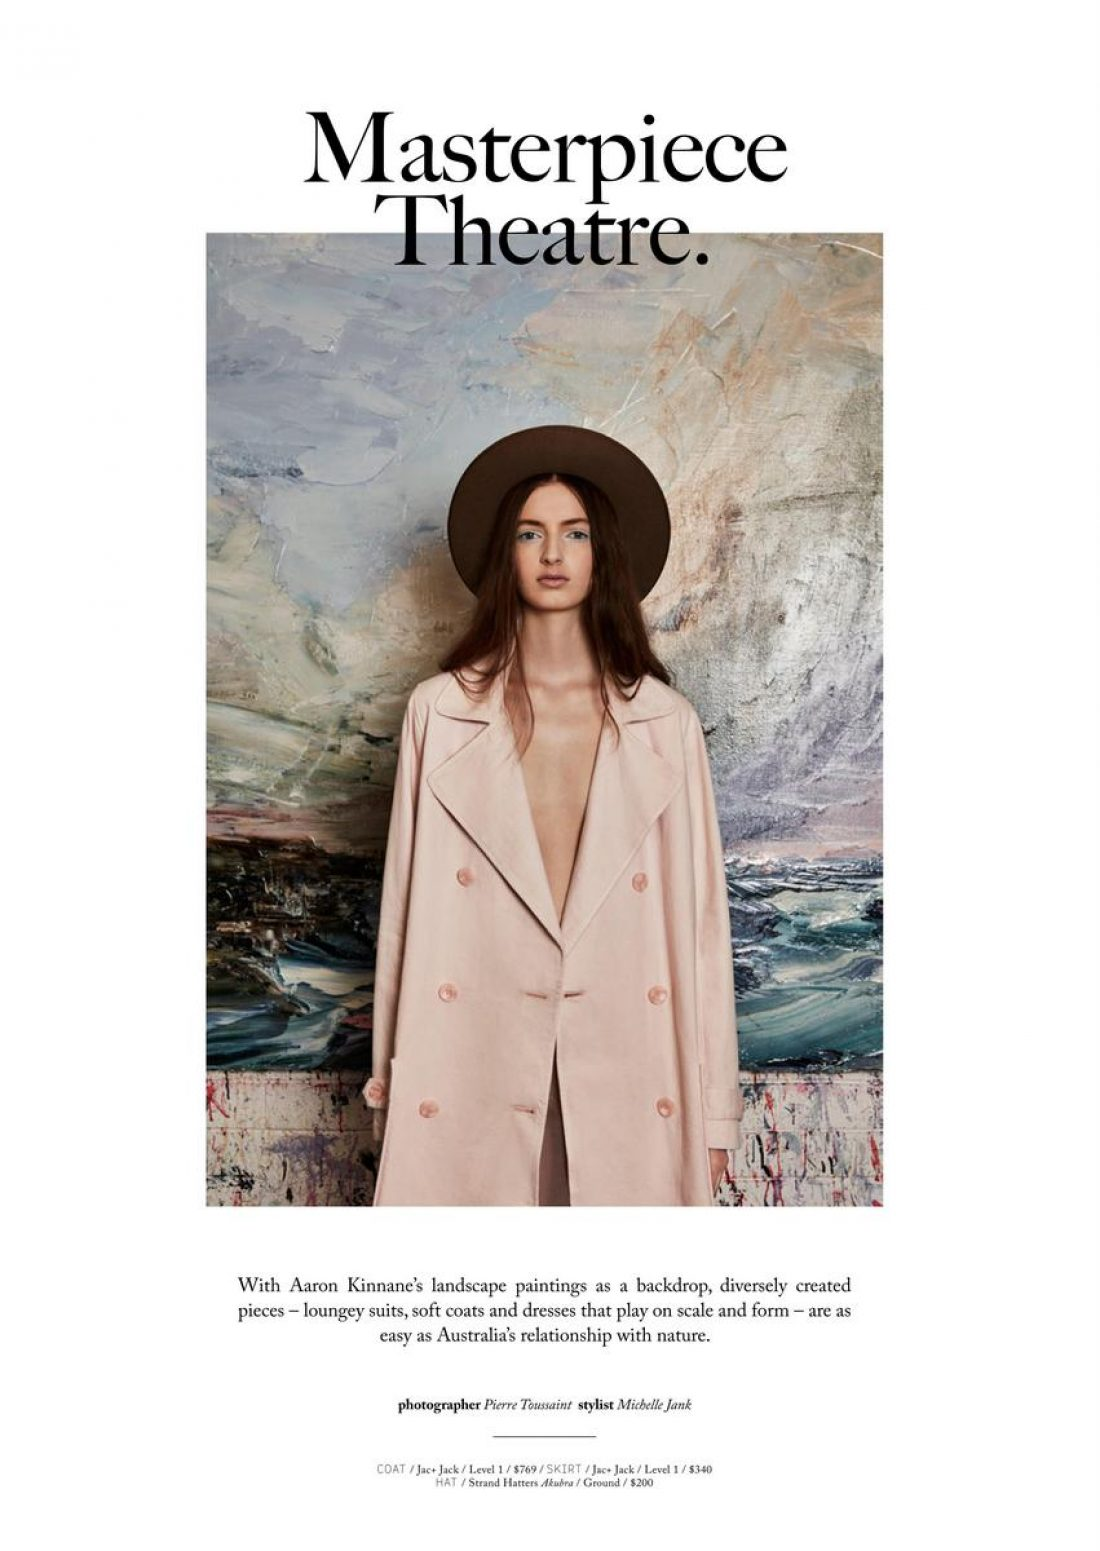 Maisie photographed By Pierre Touissant for the Strand Magazine, styling Michelle Jank